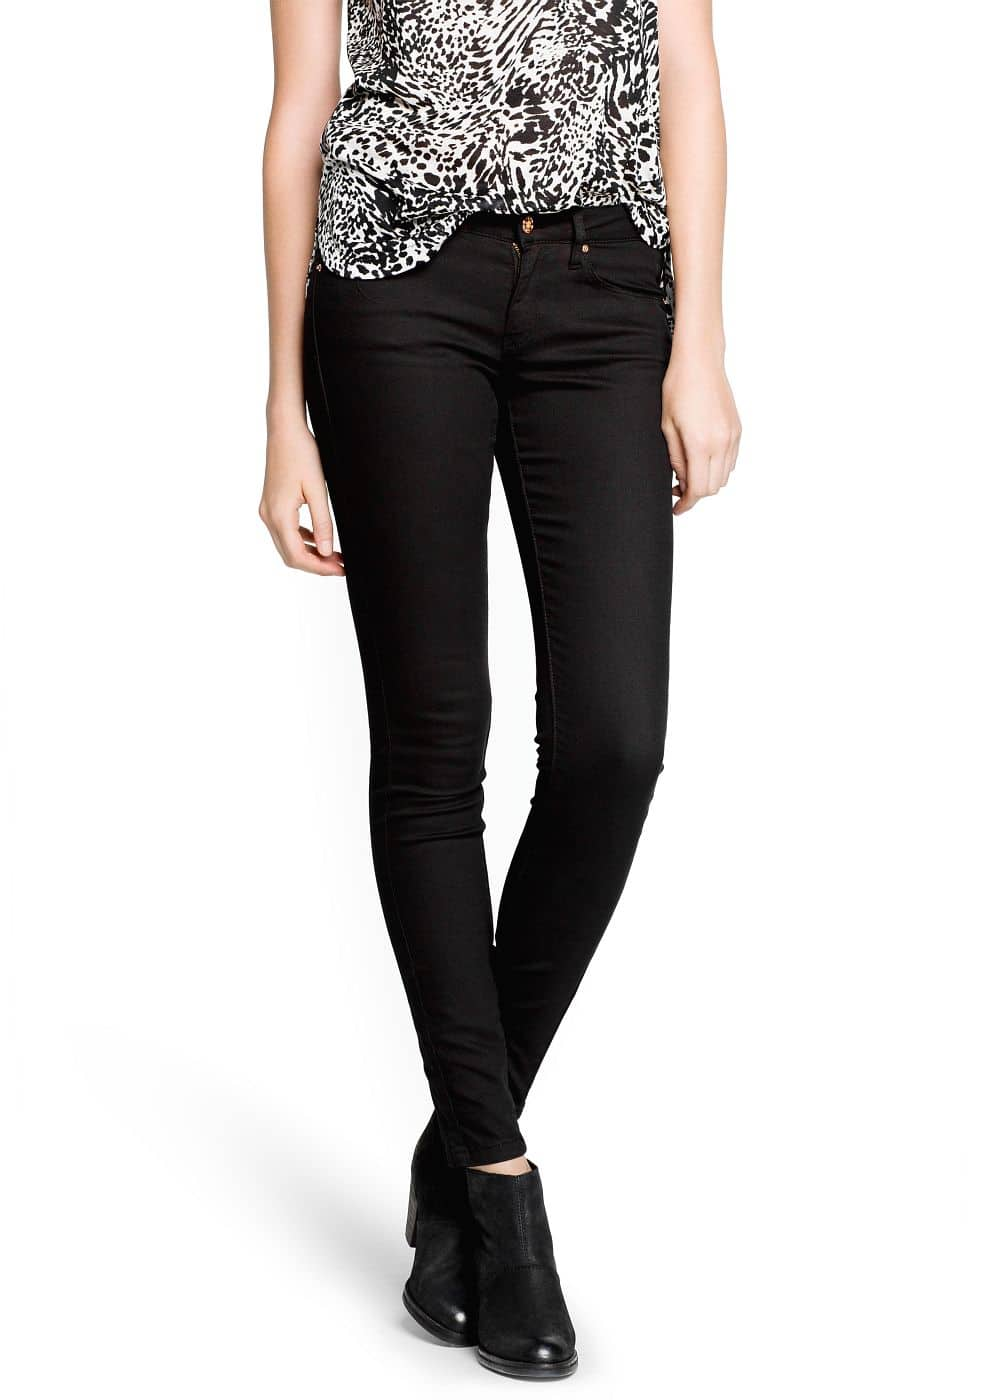 See all results for black jeans womens. Levi's Women's Slimming Skinny Jean. by Levi's. $ - $ $ 35 $ 59 50 Prime. FREE Shipping on eligible orders. Some sizes/colors are Prime eligible. out of 5 stars Product Features Mid rise jeans with a skinny leg and slim fit through thigh.